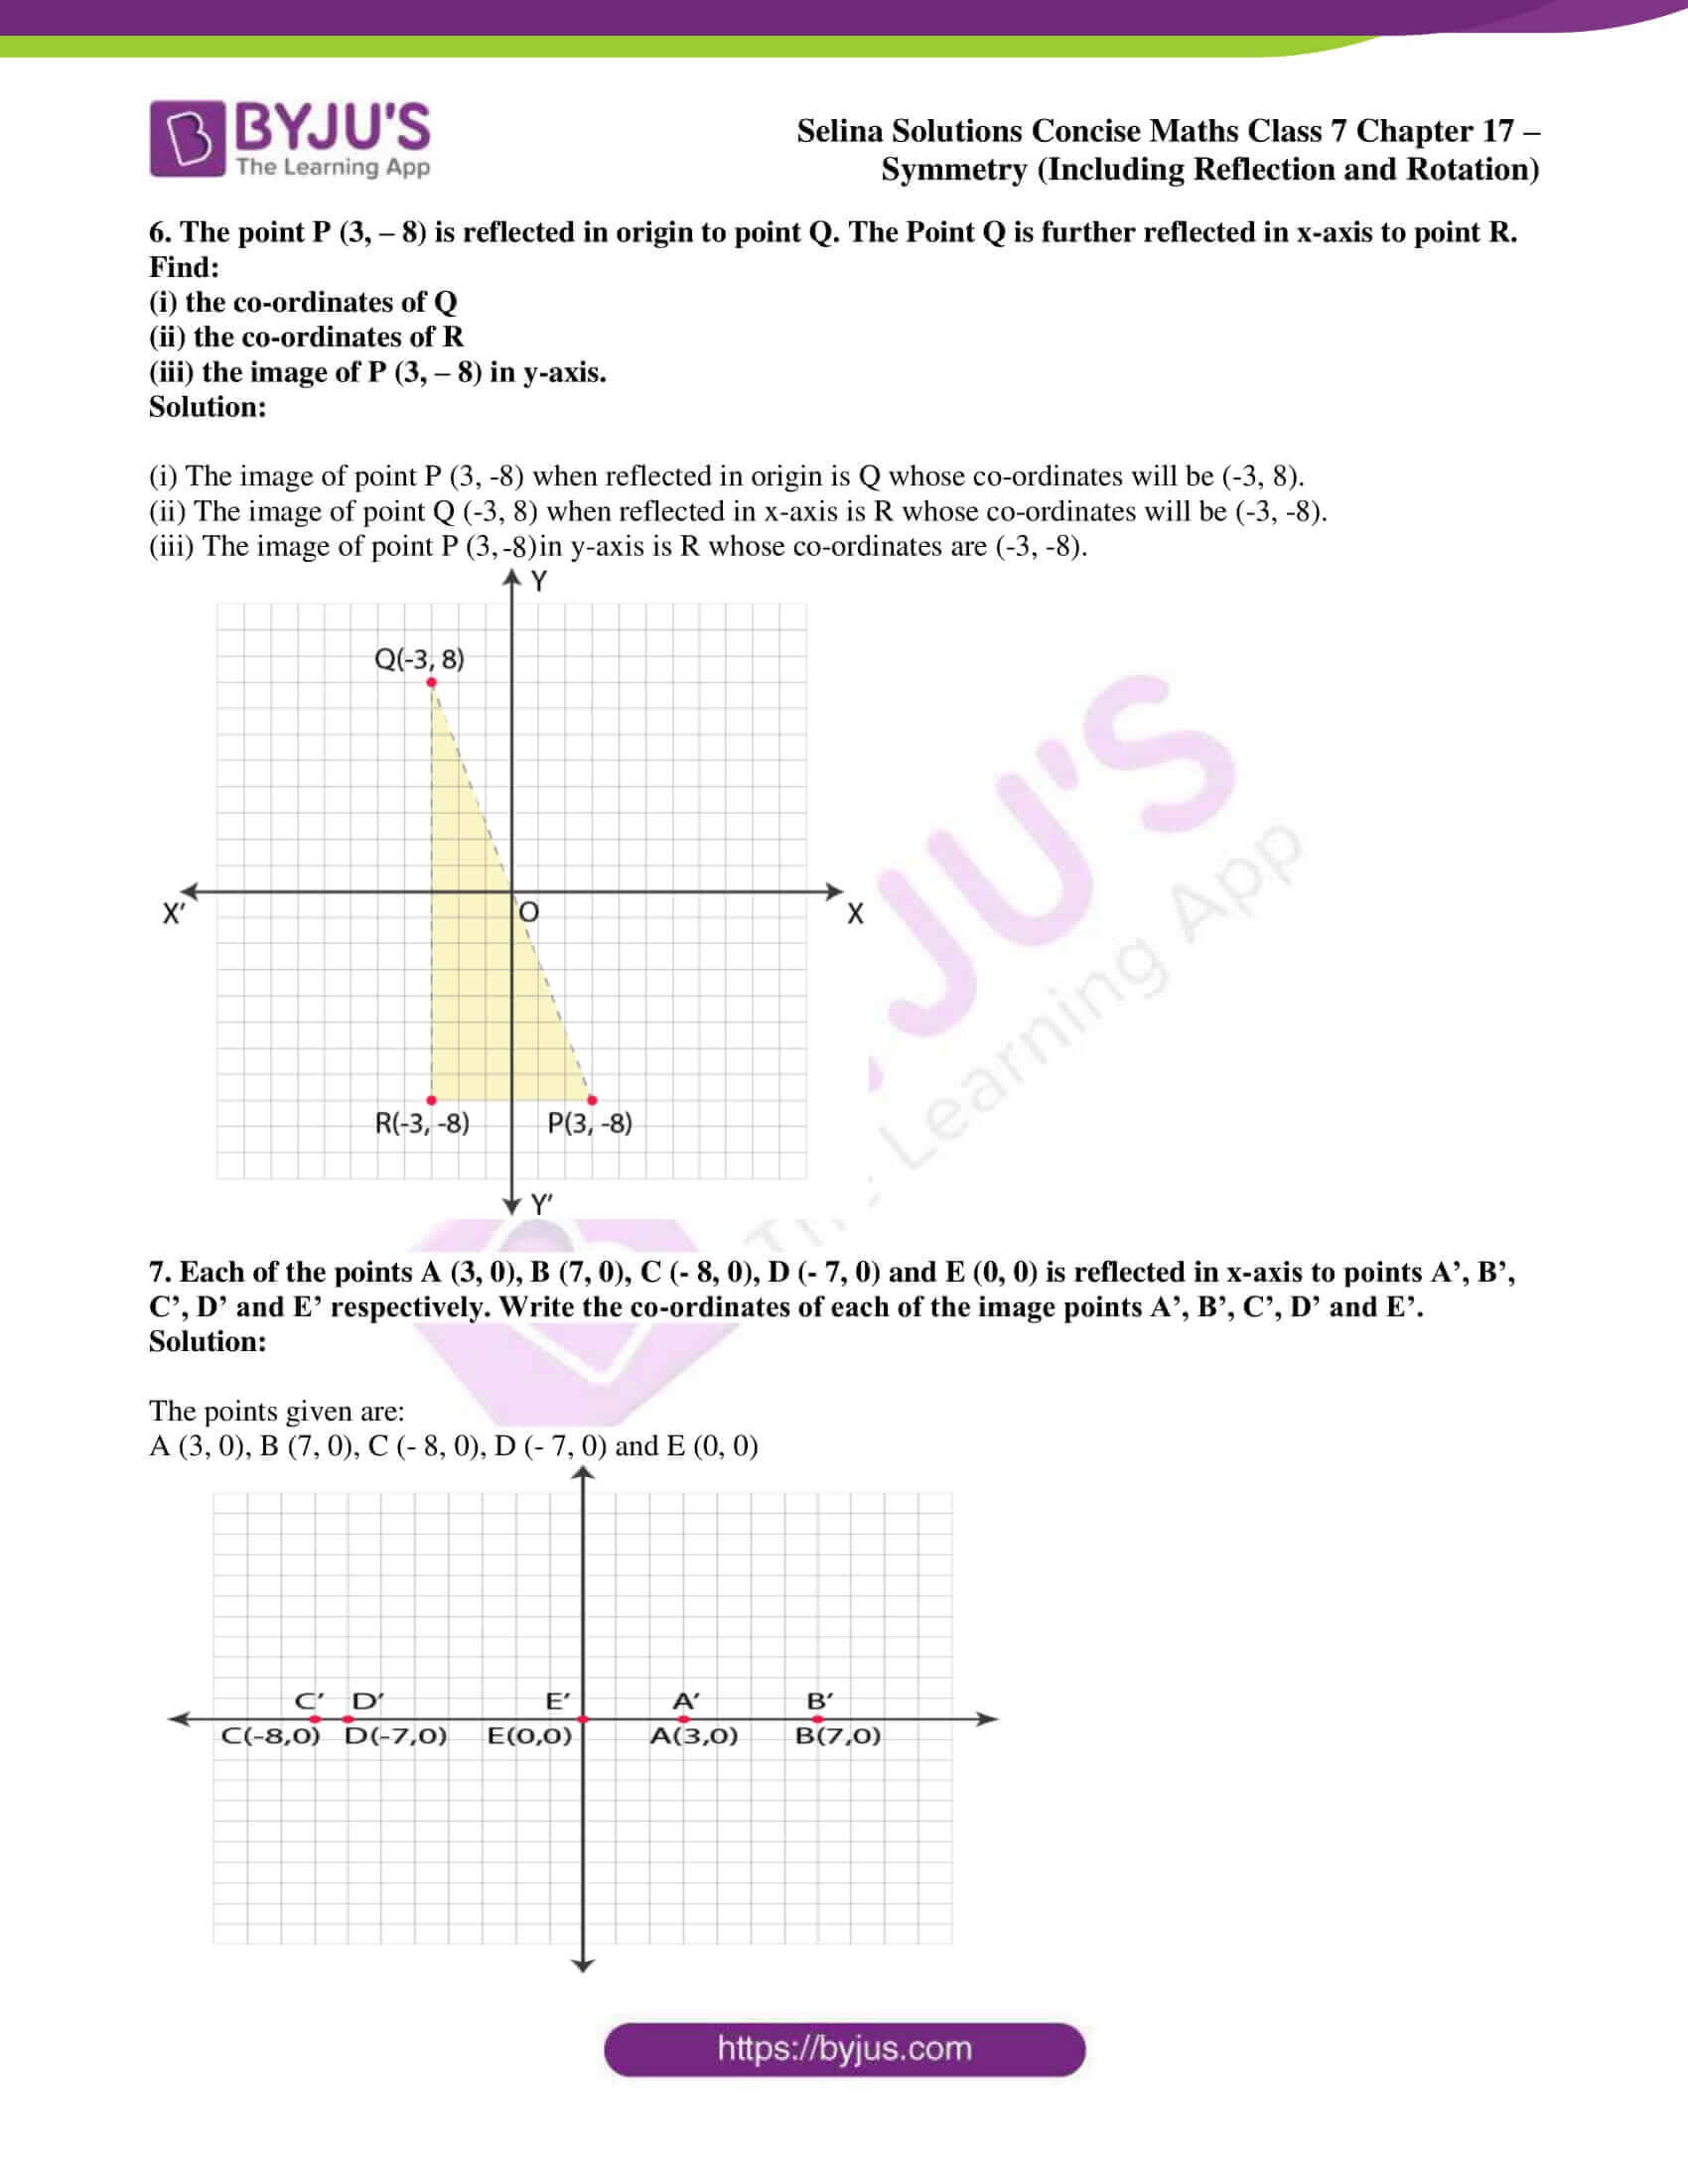 selina sol concise maths class 7 chapter 17 ex b 5